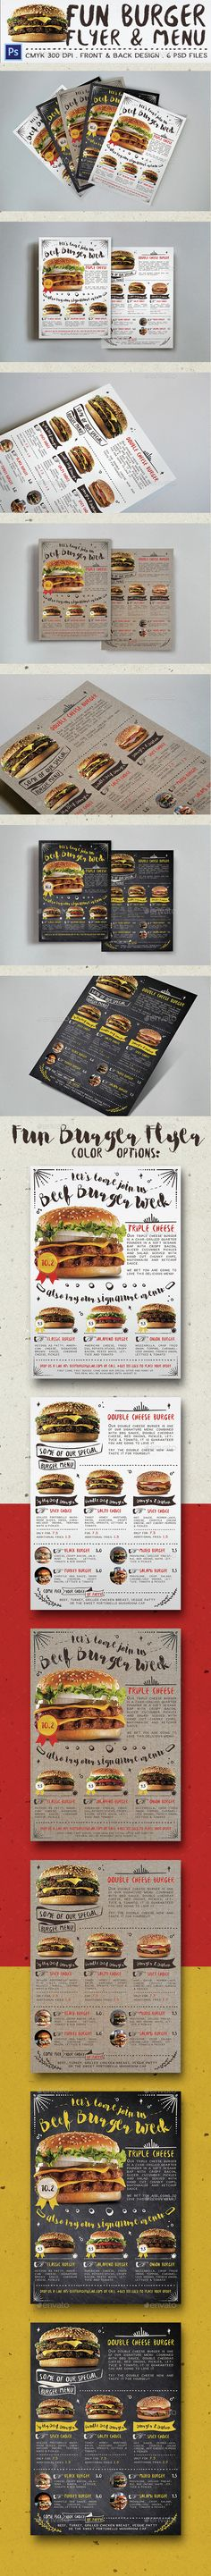 Fun Burger Flyer & Menu Template PSD. Download here: http://graphicriver.net/item/fun-burger-flyer-menu/15169916?ref=ksioks